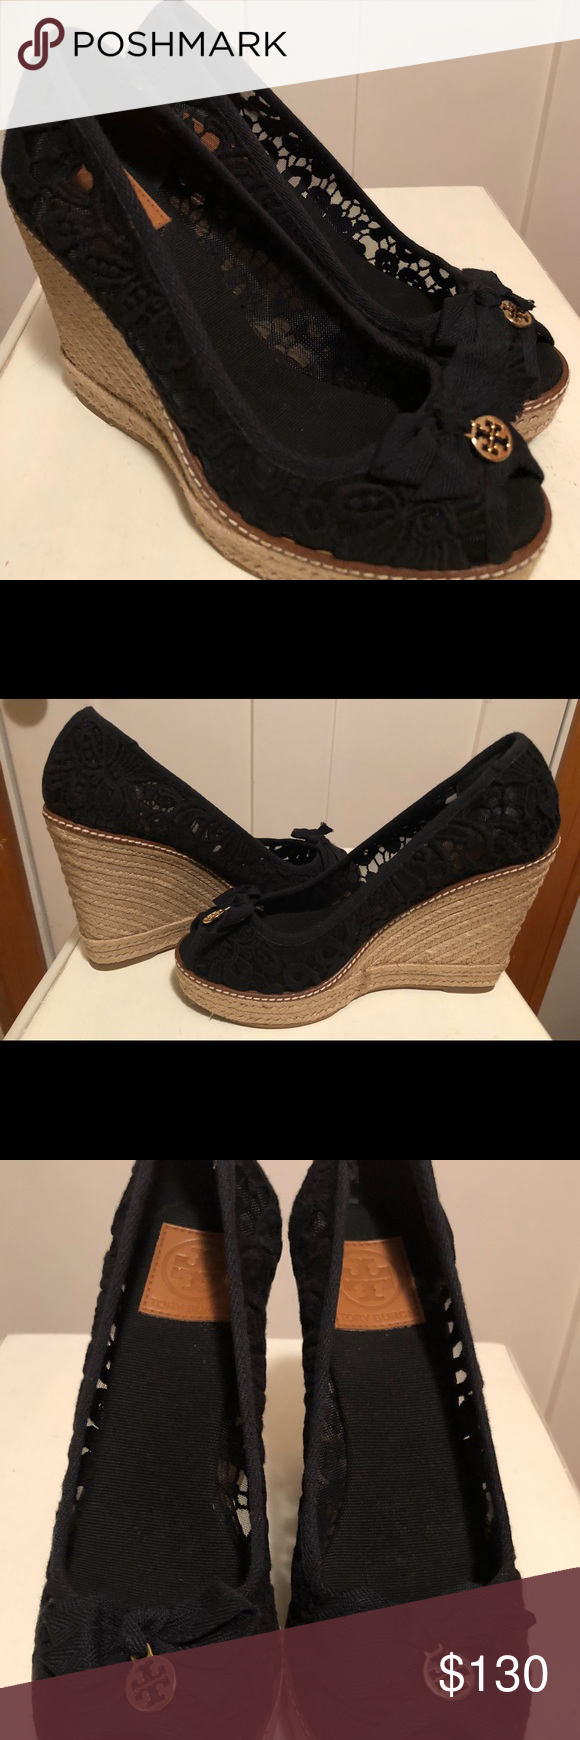 01cbbde39cf New Tory Burch Jackie Espadrille Wedge Sandal Brand new with ...